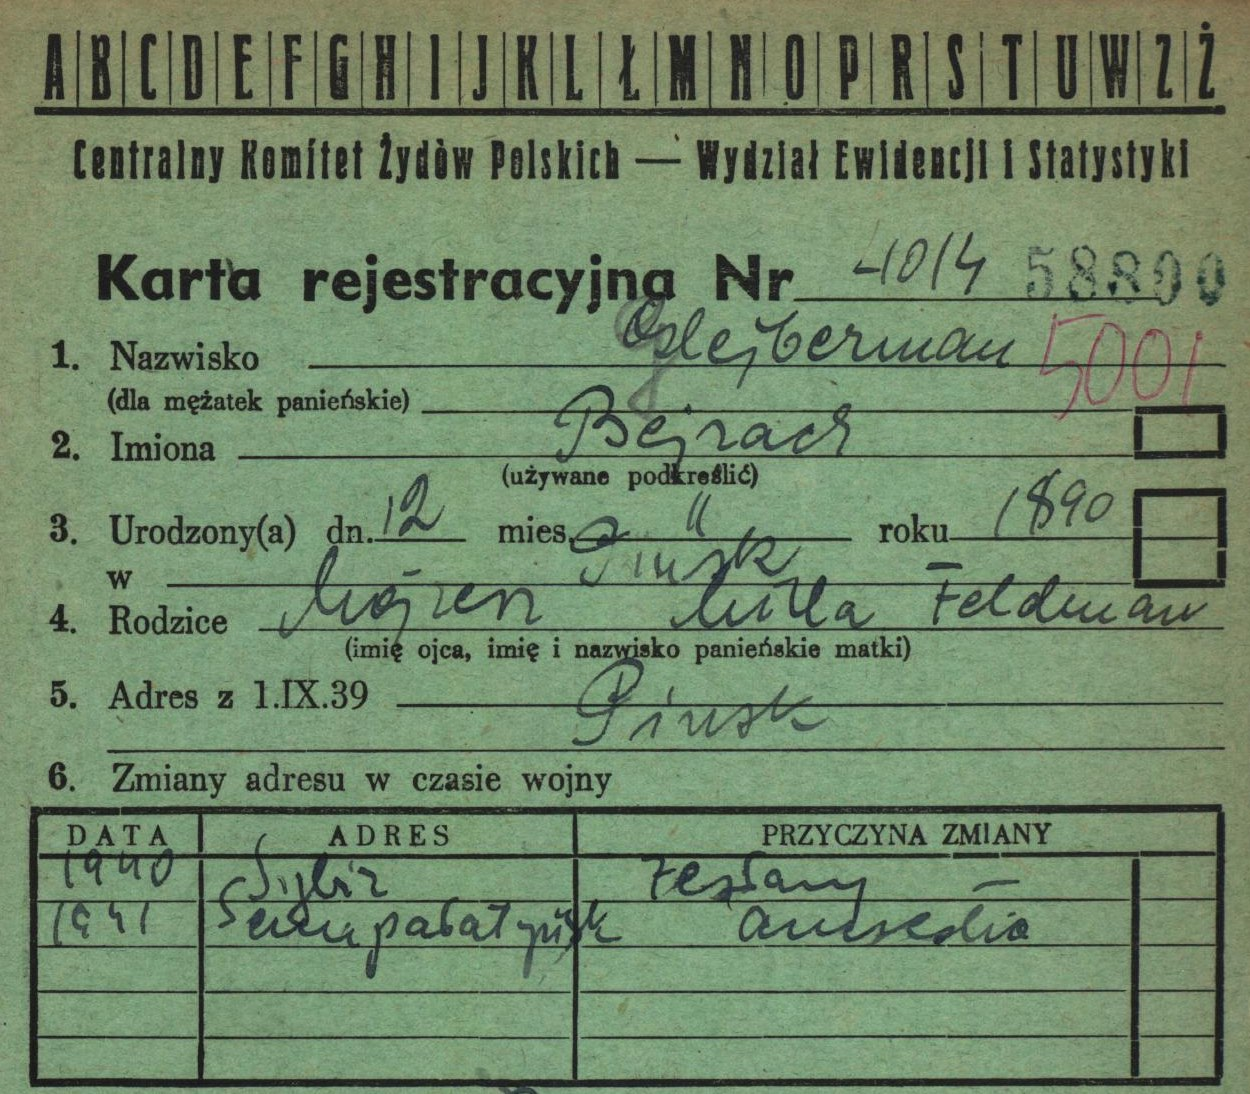 Registration Cards: the Holocaust Survivors in Poland